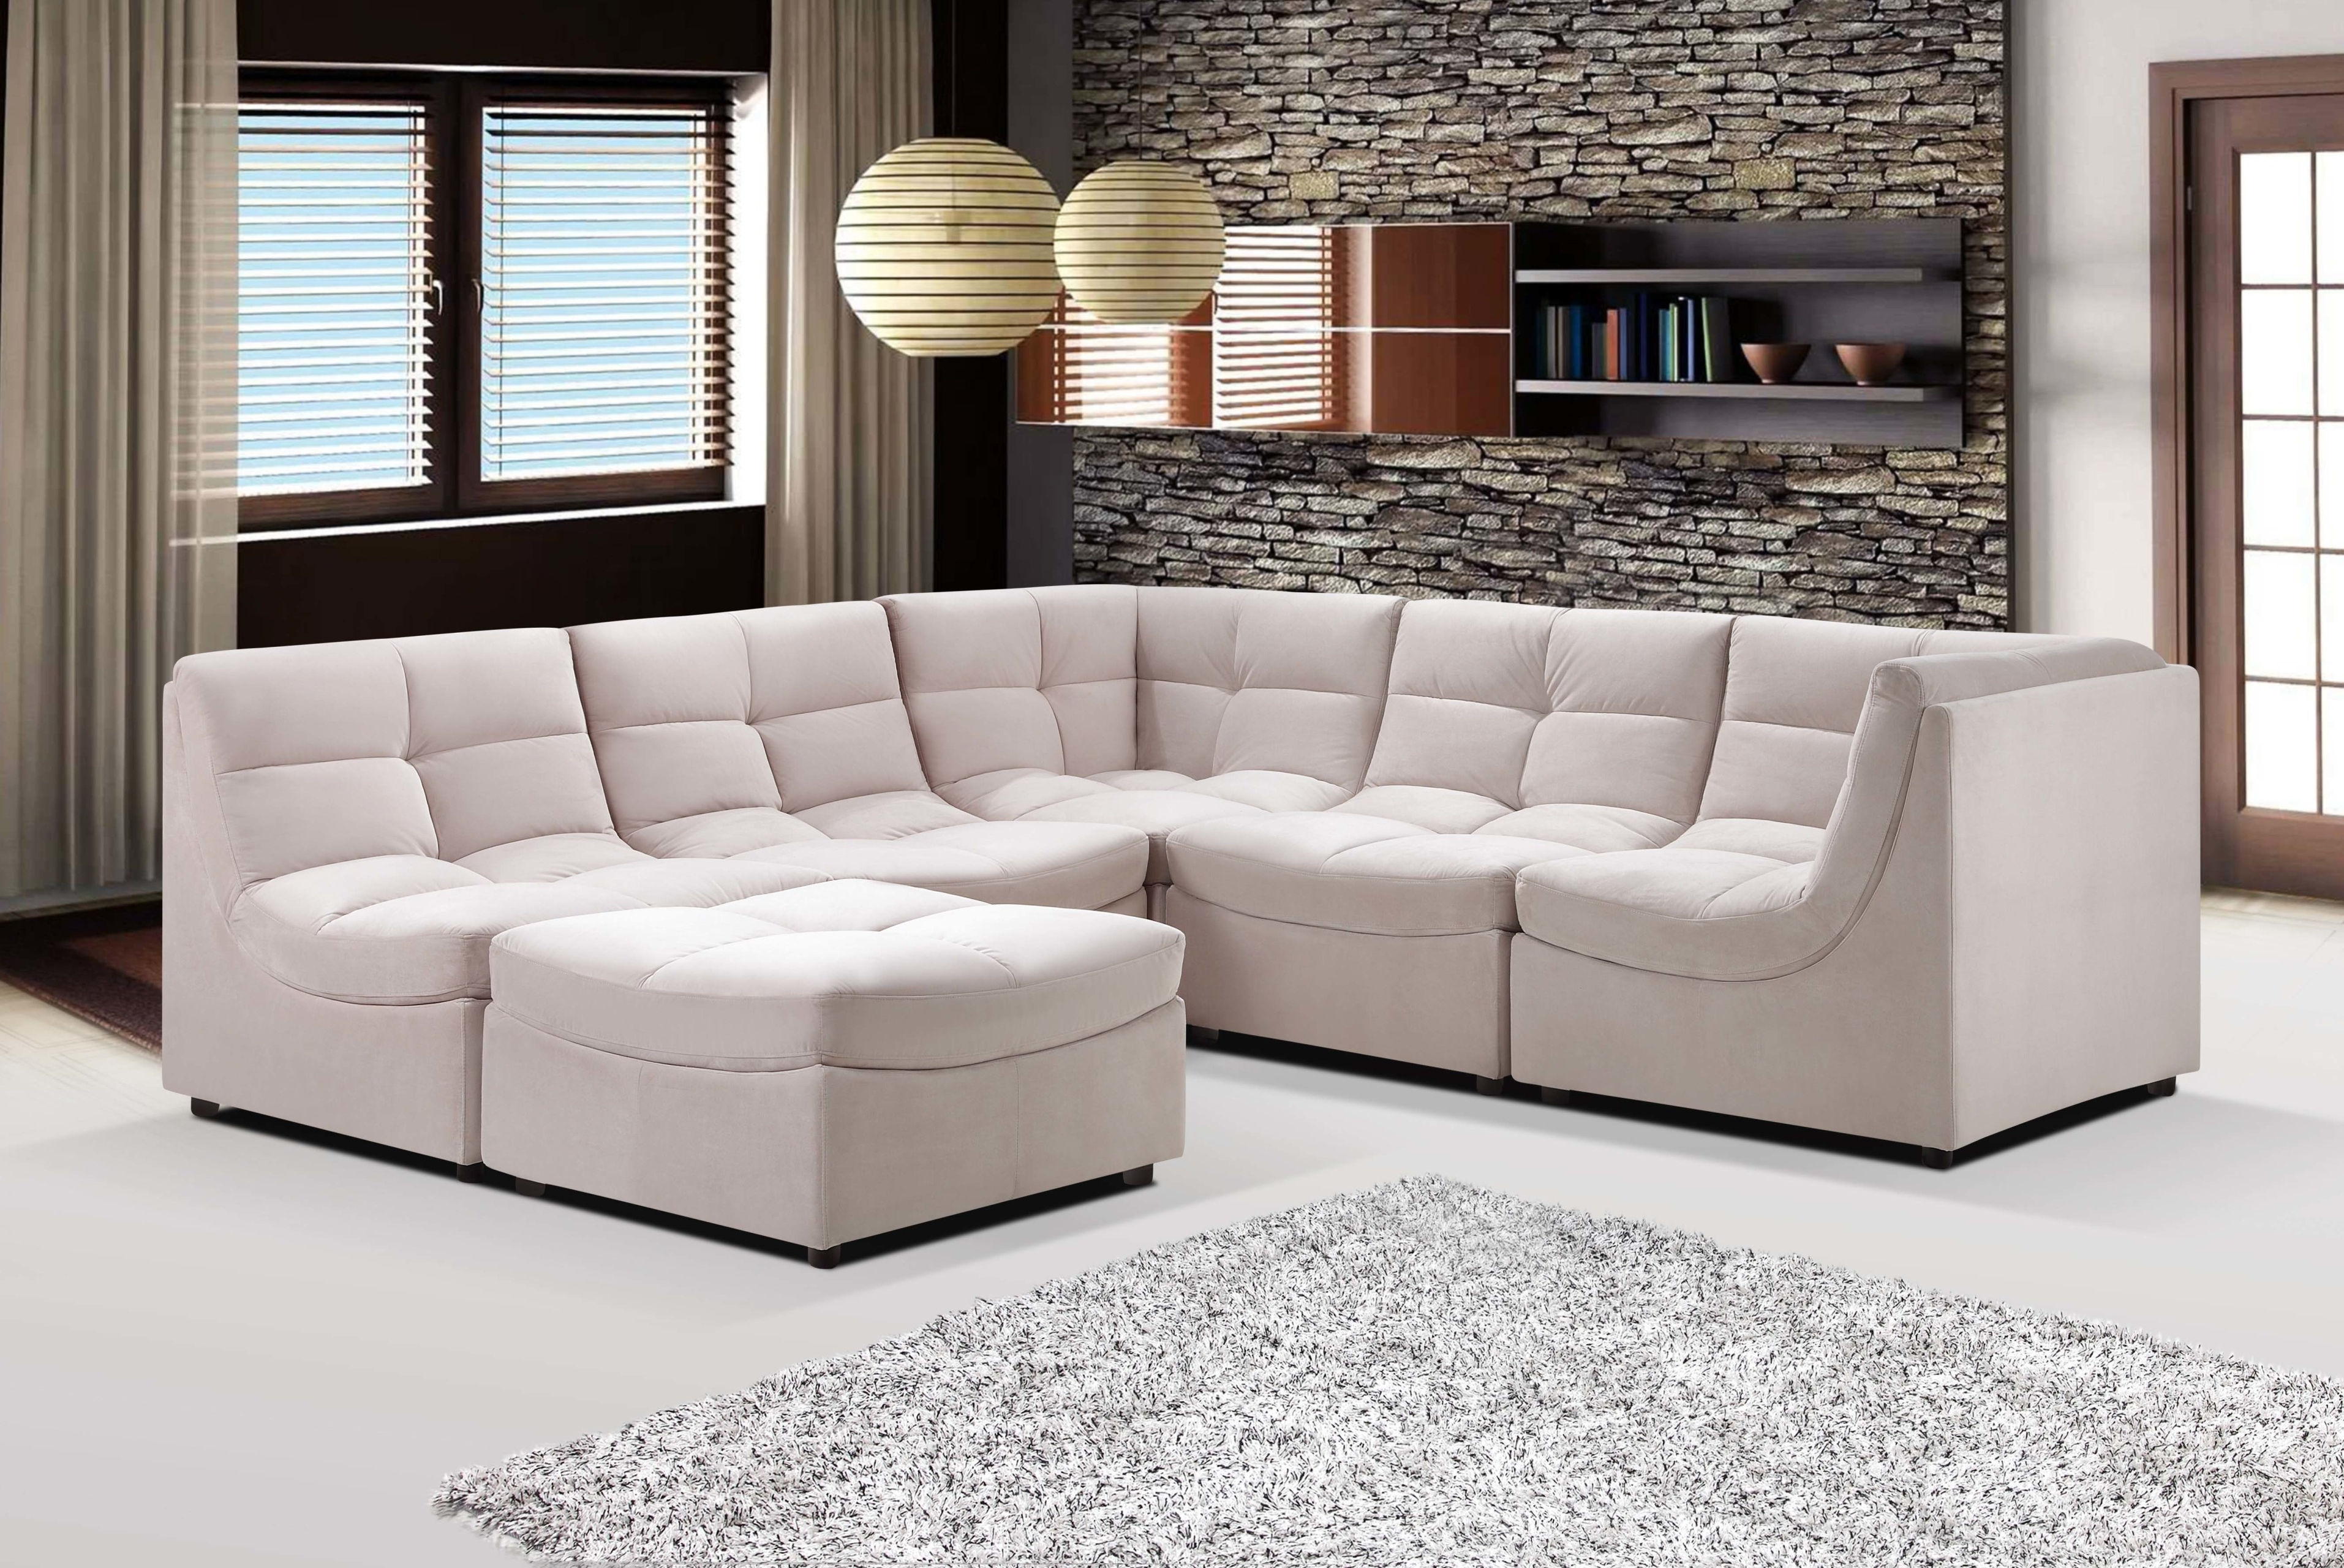 Well Known Small Modular Sofas Regarding Luxury Small Modular Sectional Sofa 21 For Your Sofa Sectionals (View 15 of 15)